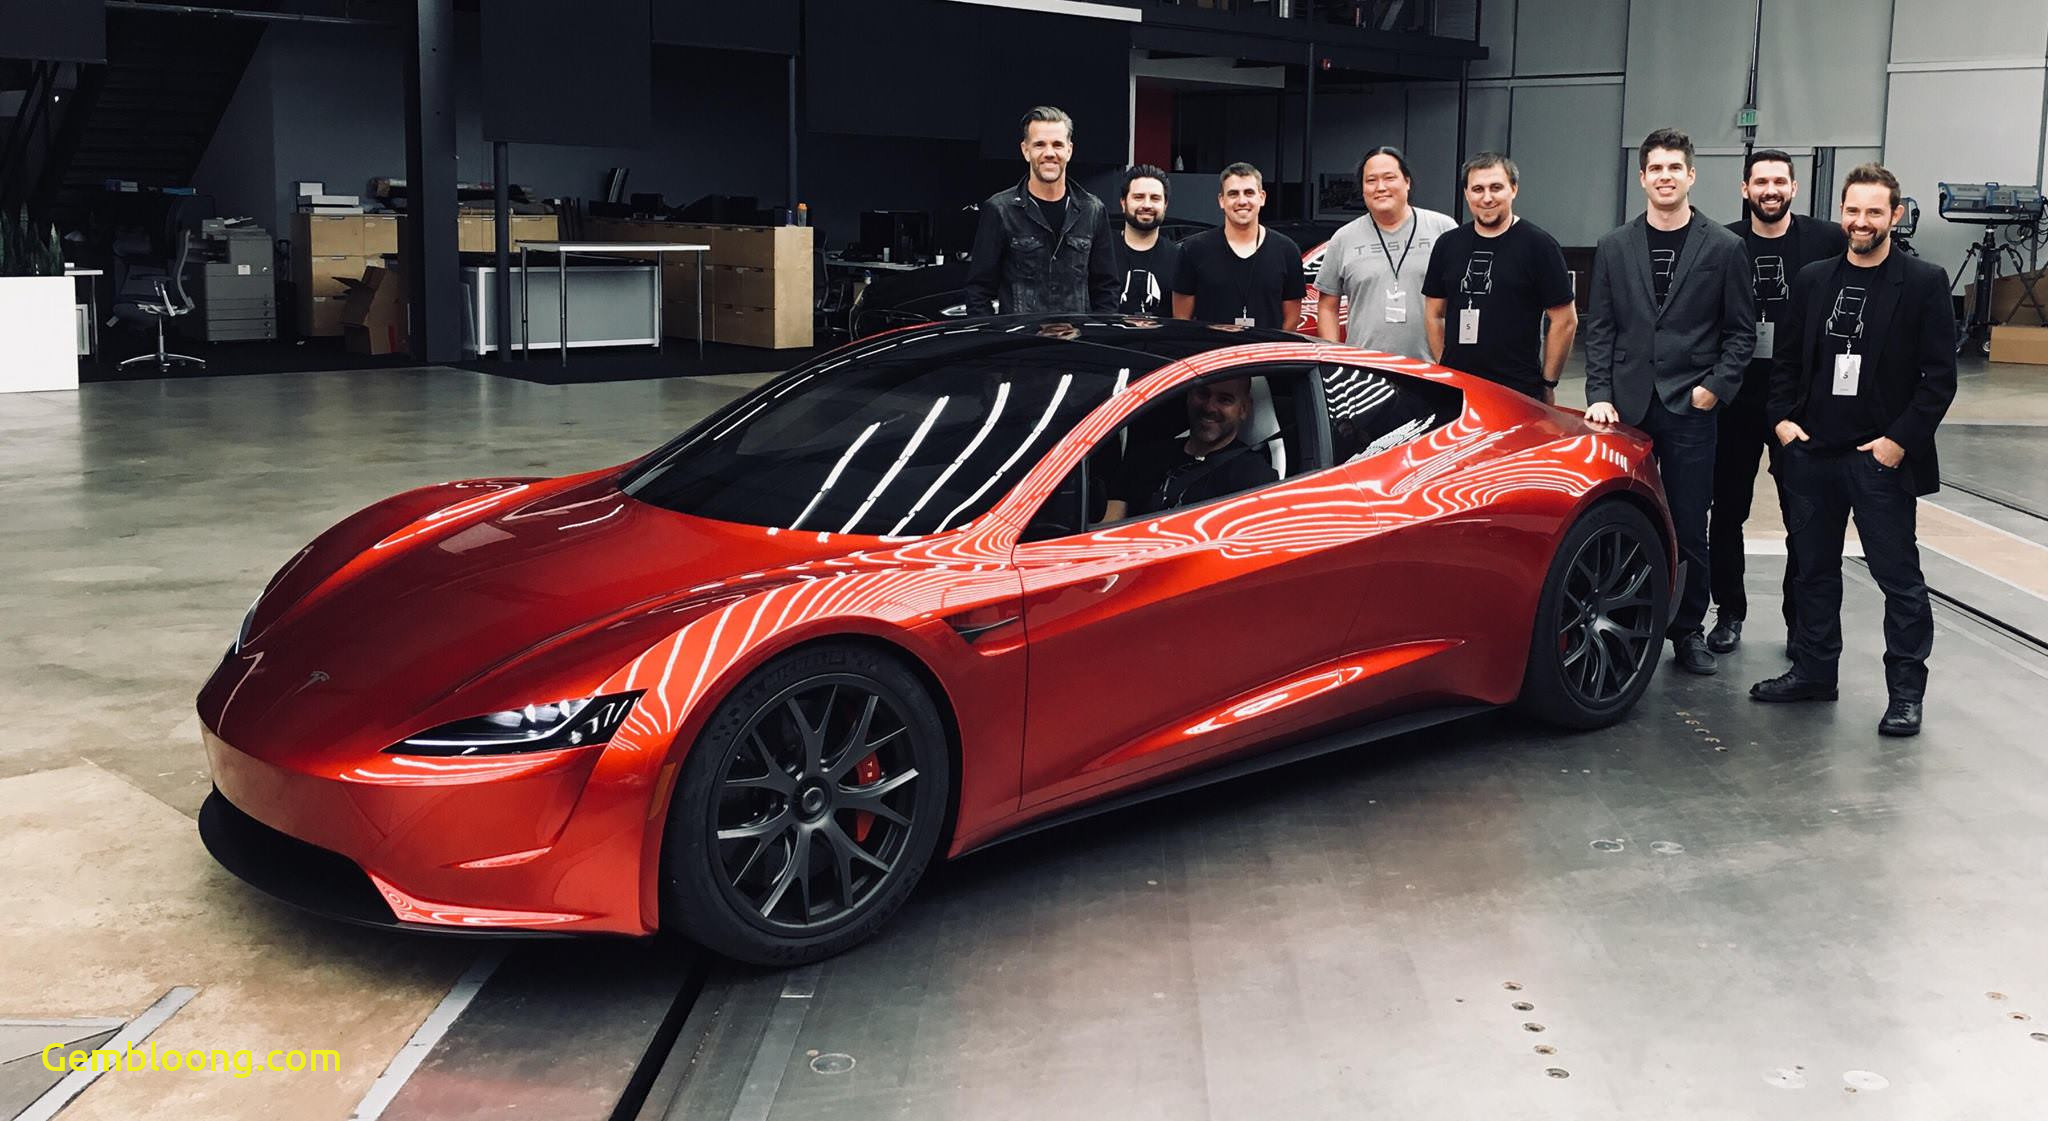 When Tesla Roadster Beautiful New Photos Provide An Interesting Look at the Tesla